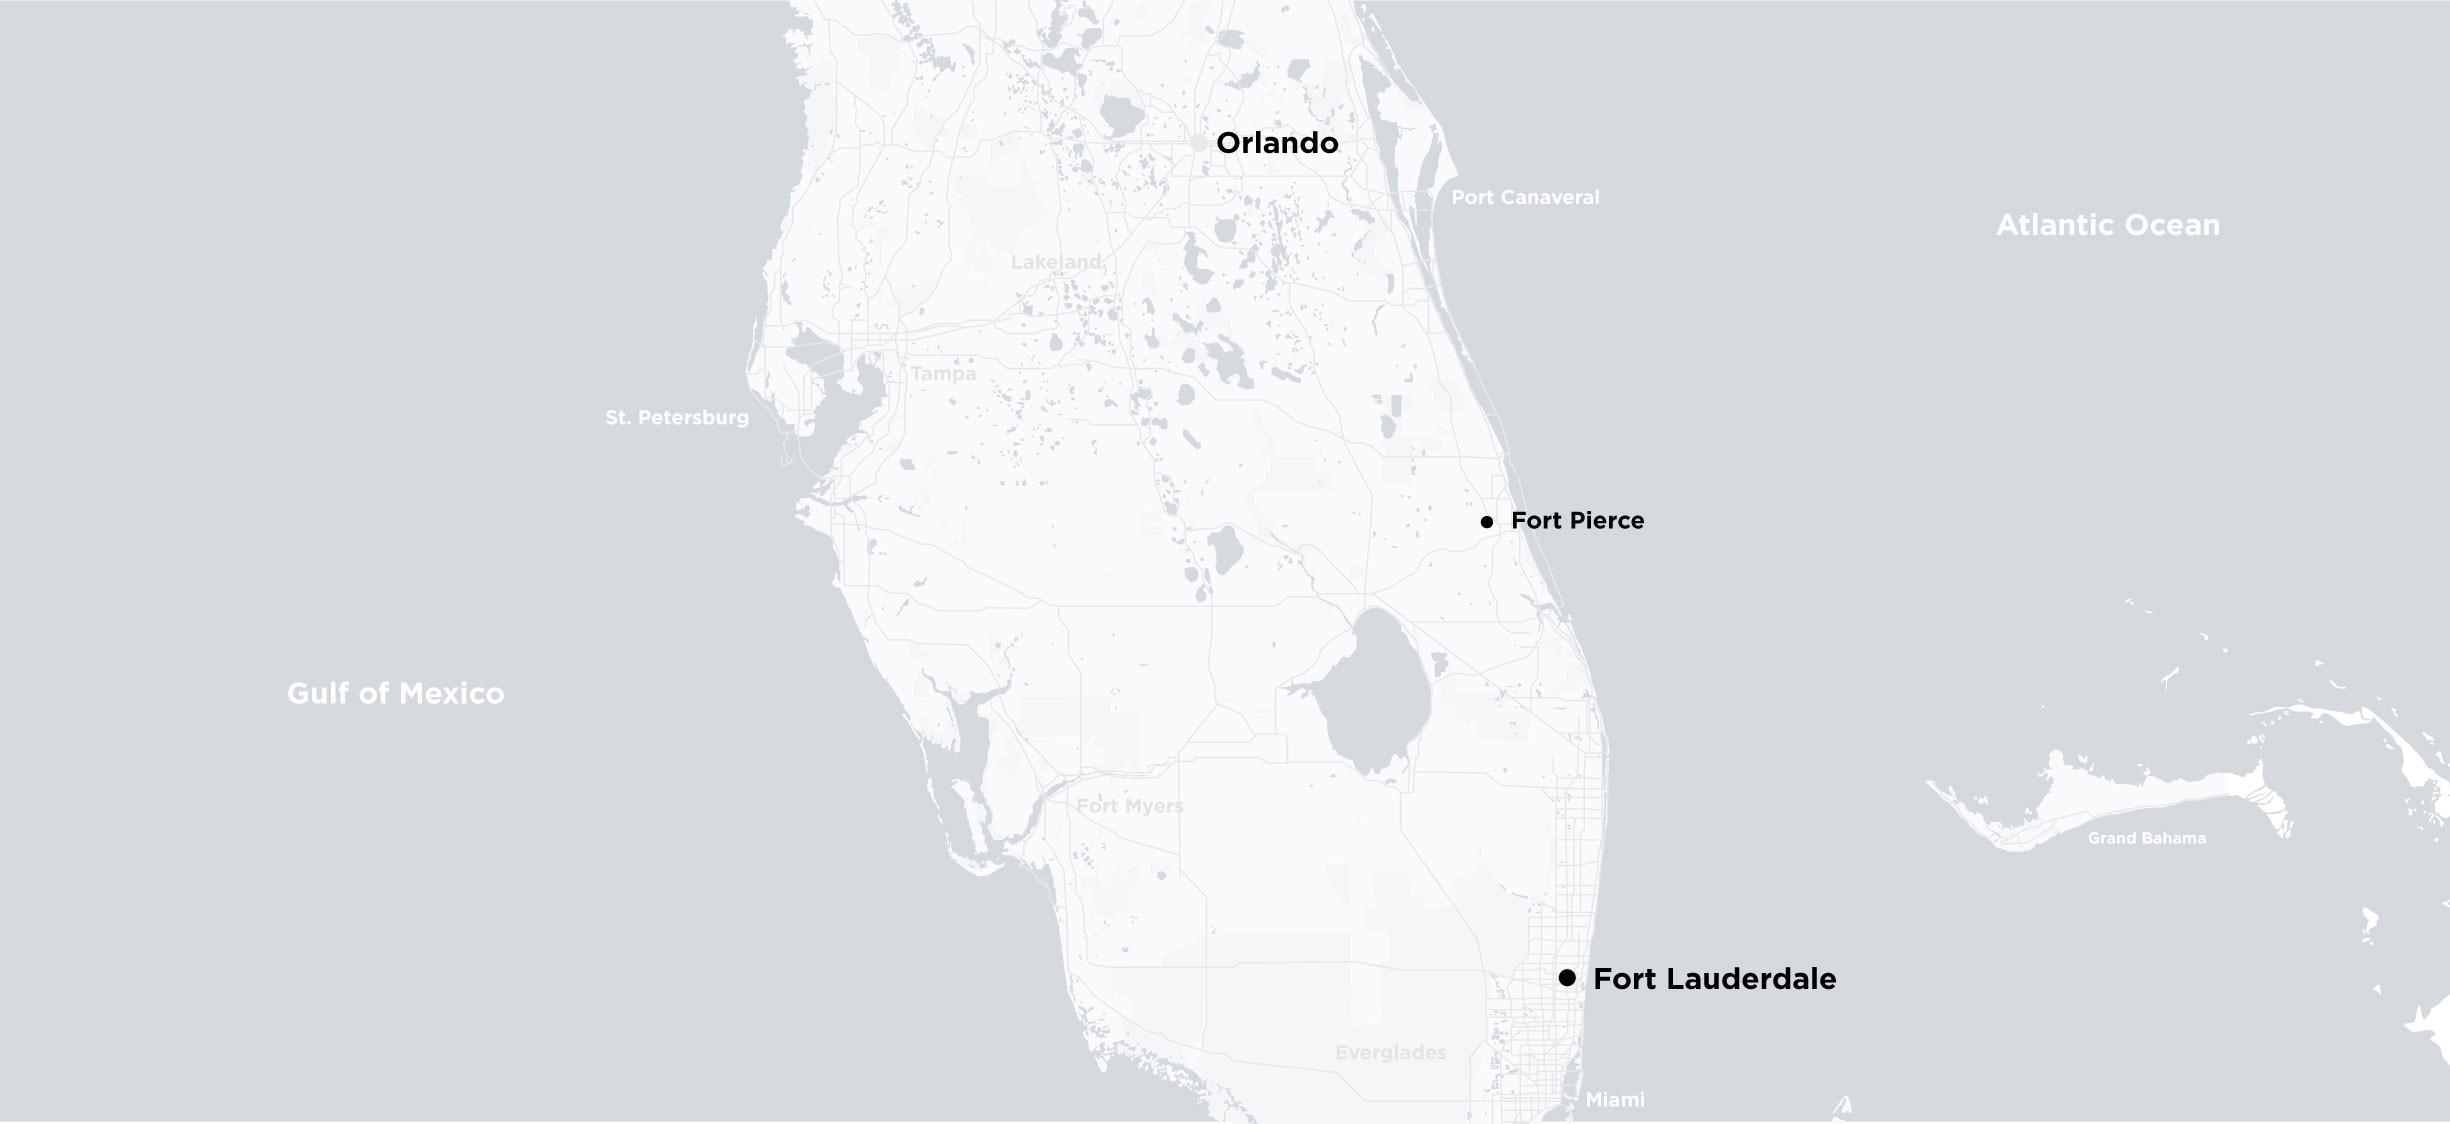 Fort Lauderdale to Orlando